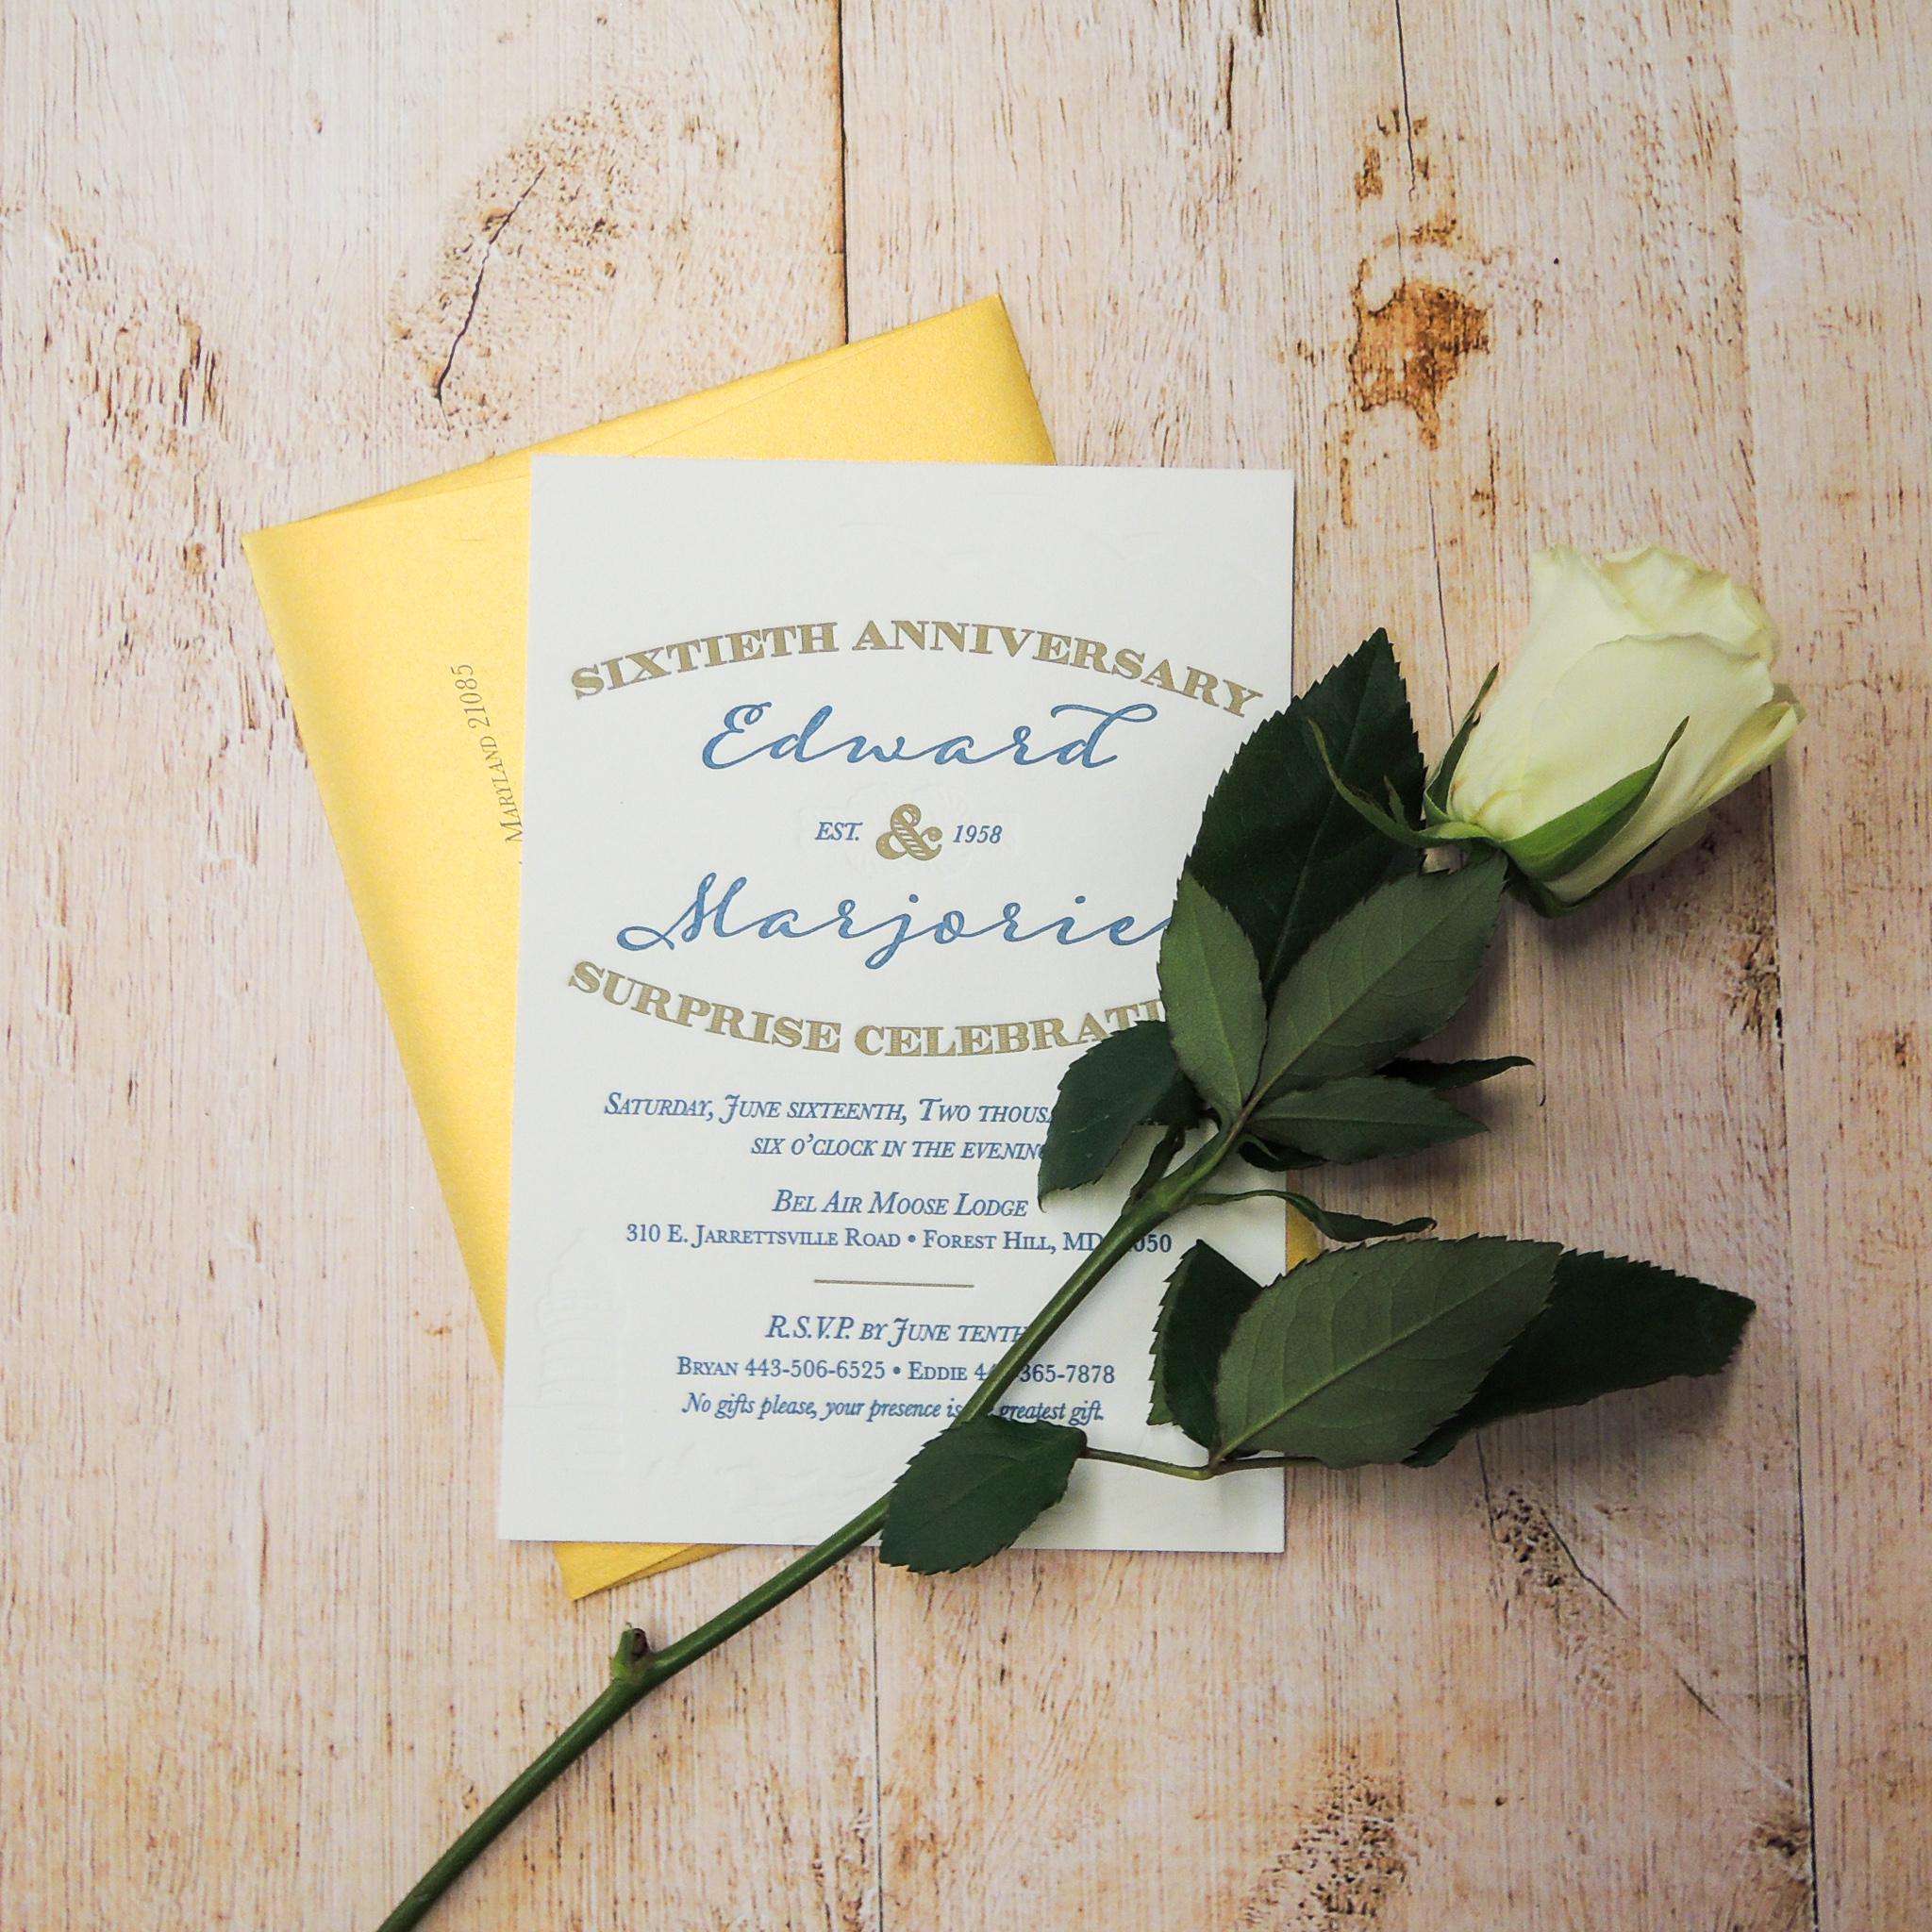 TypeAInvitations_SurpriseAnniversaryParty_NauticalTheme_Maryland_Beach.jpg